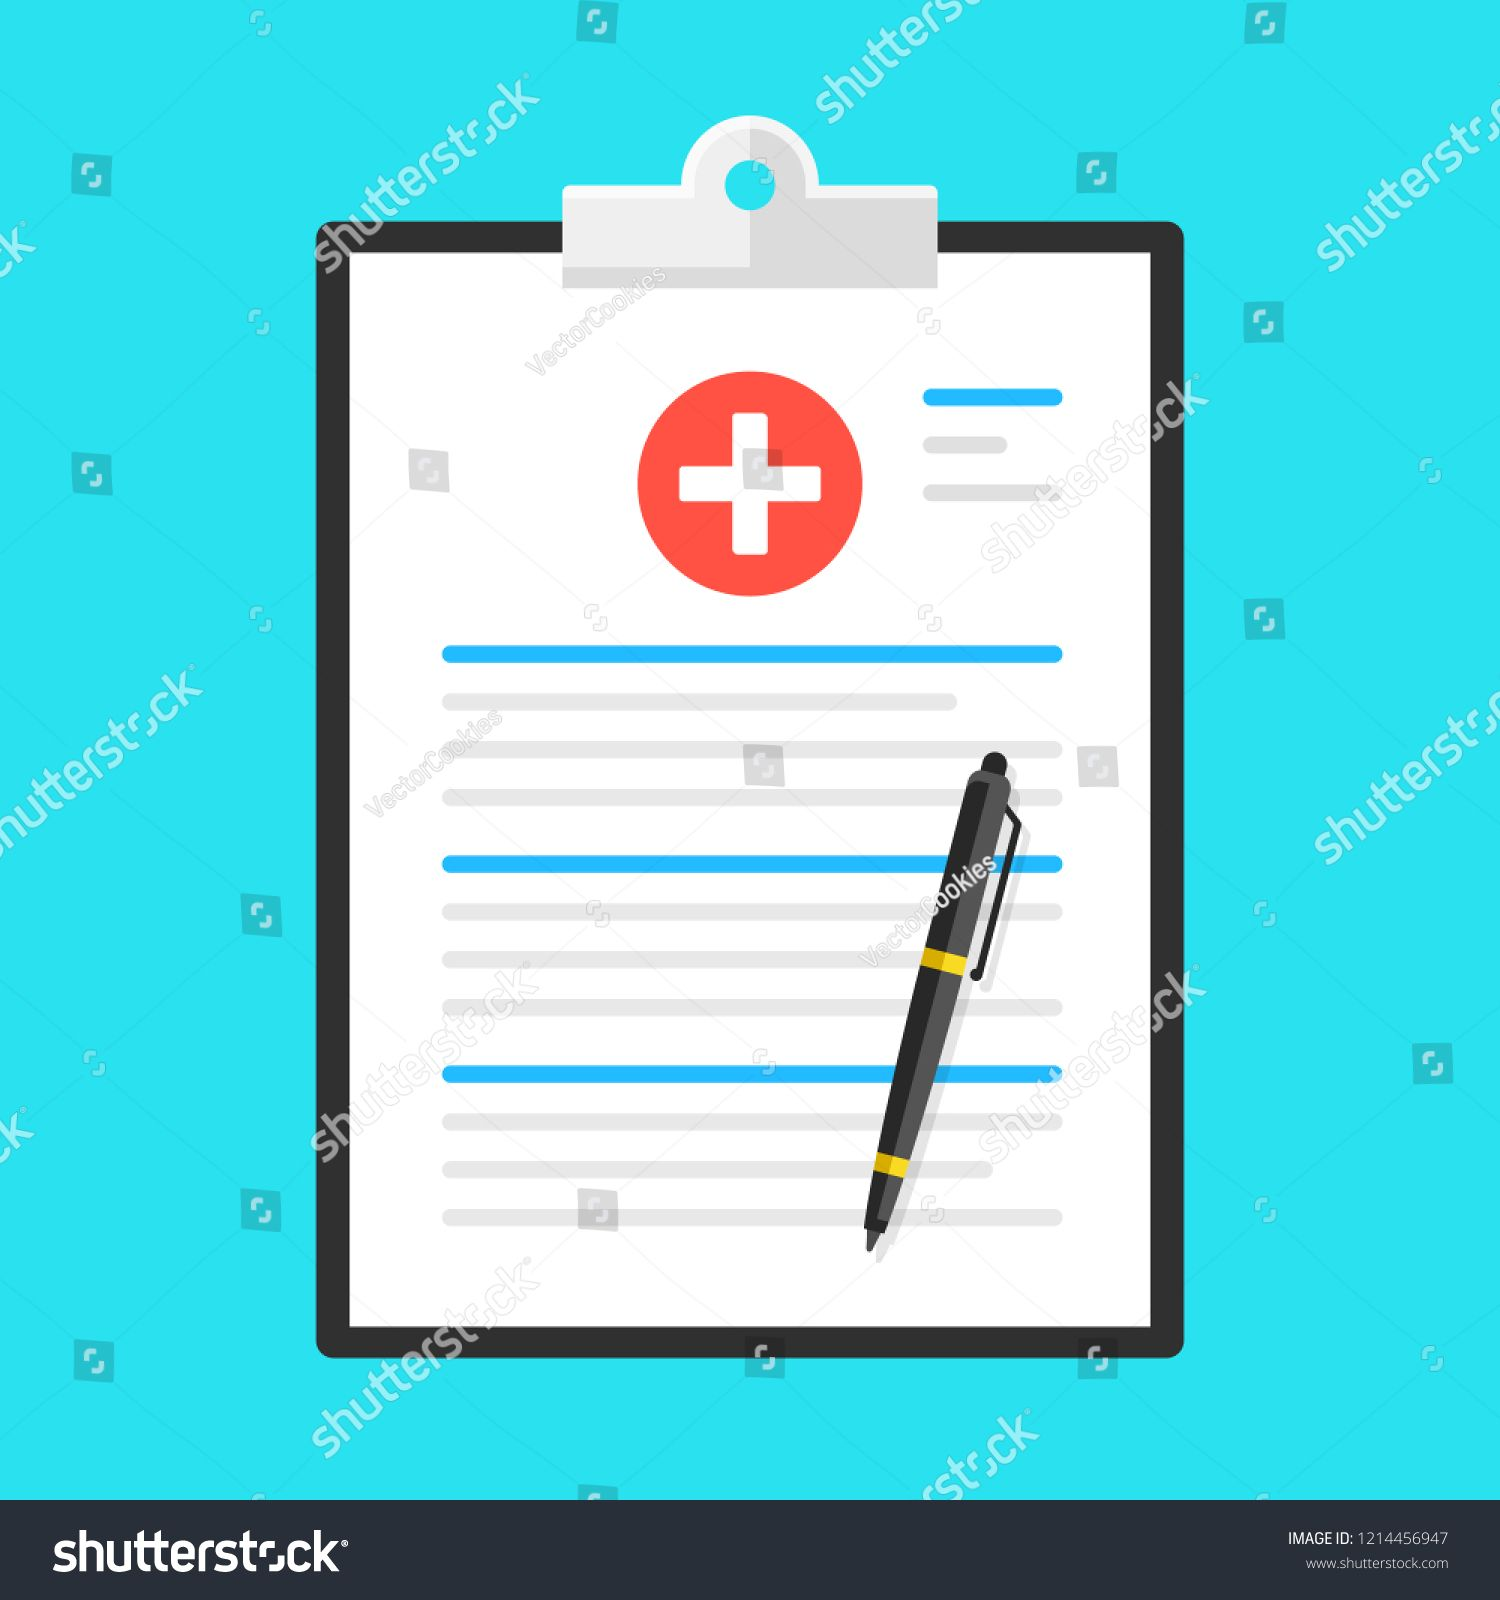 Medical Form Health Insurance Medical Clipboard With Pen Flat